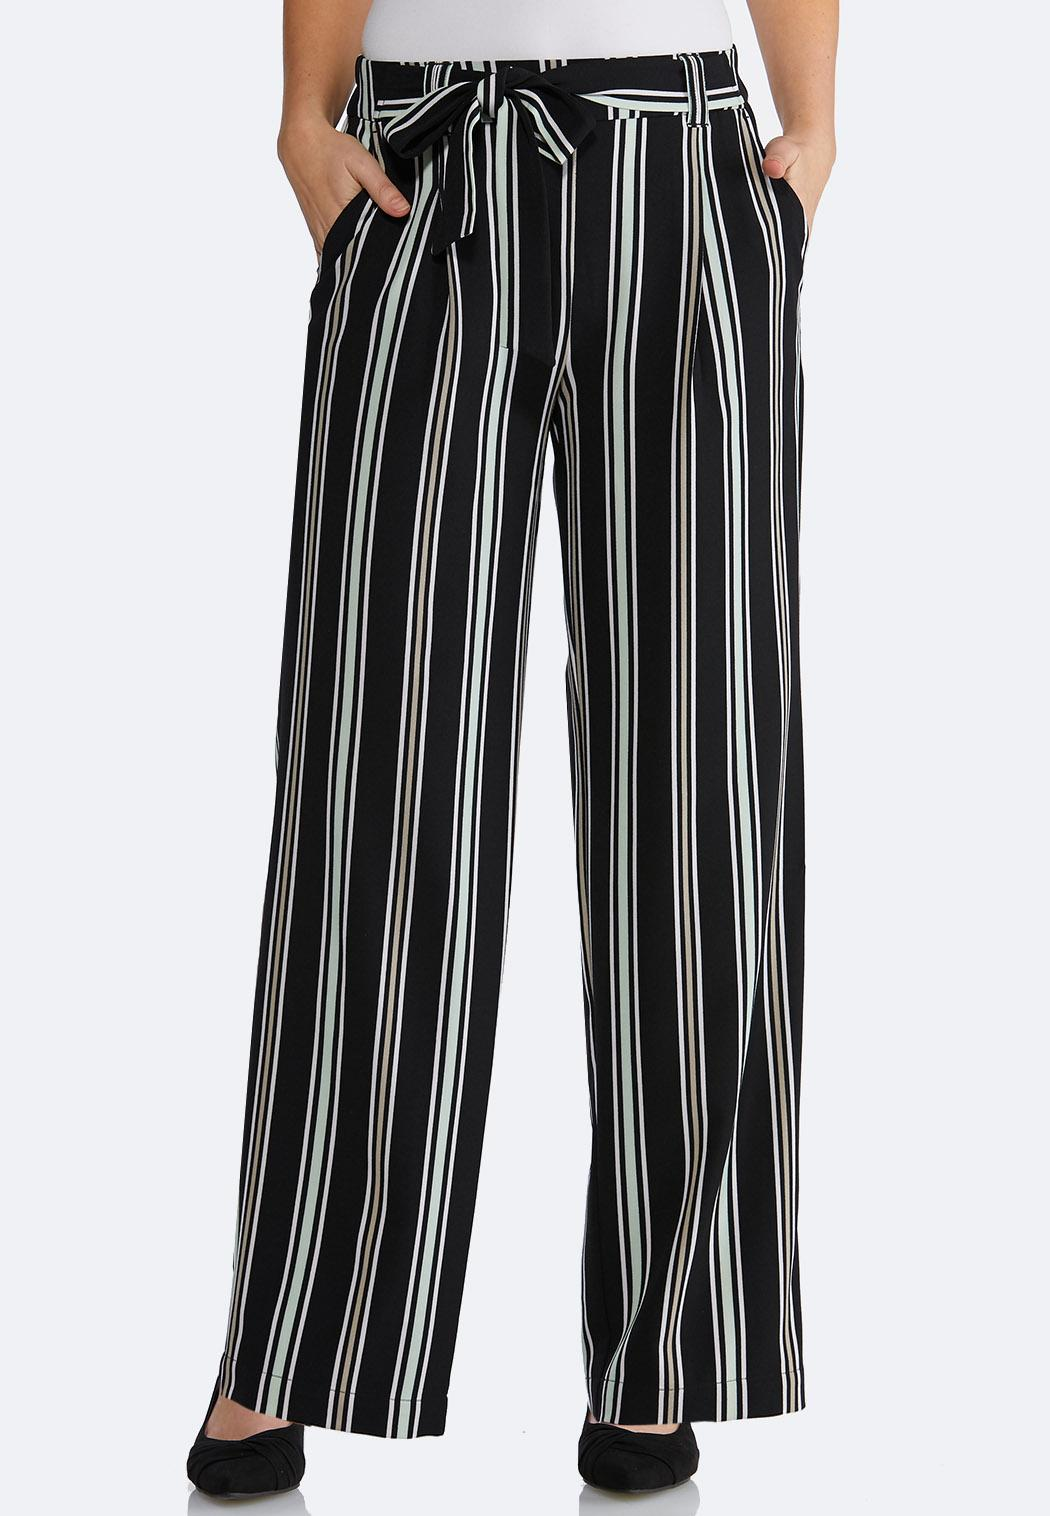 31409570d5 Striped Tie Front Palazzo Pants Wide Leg Cato Fashions